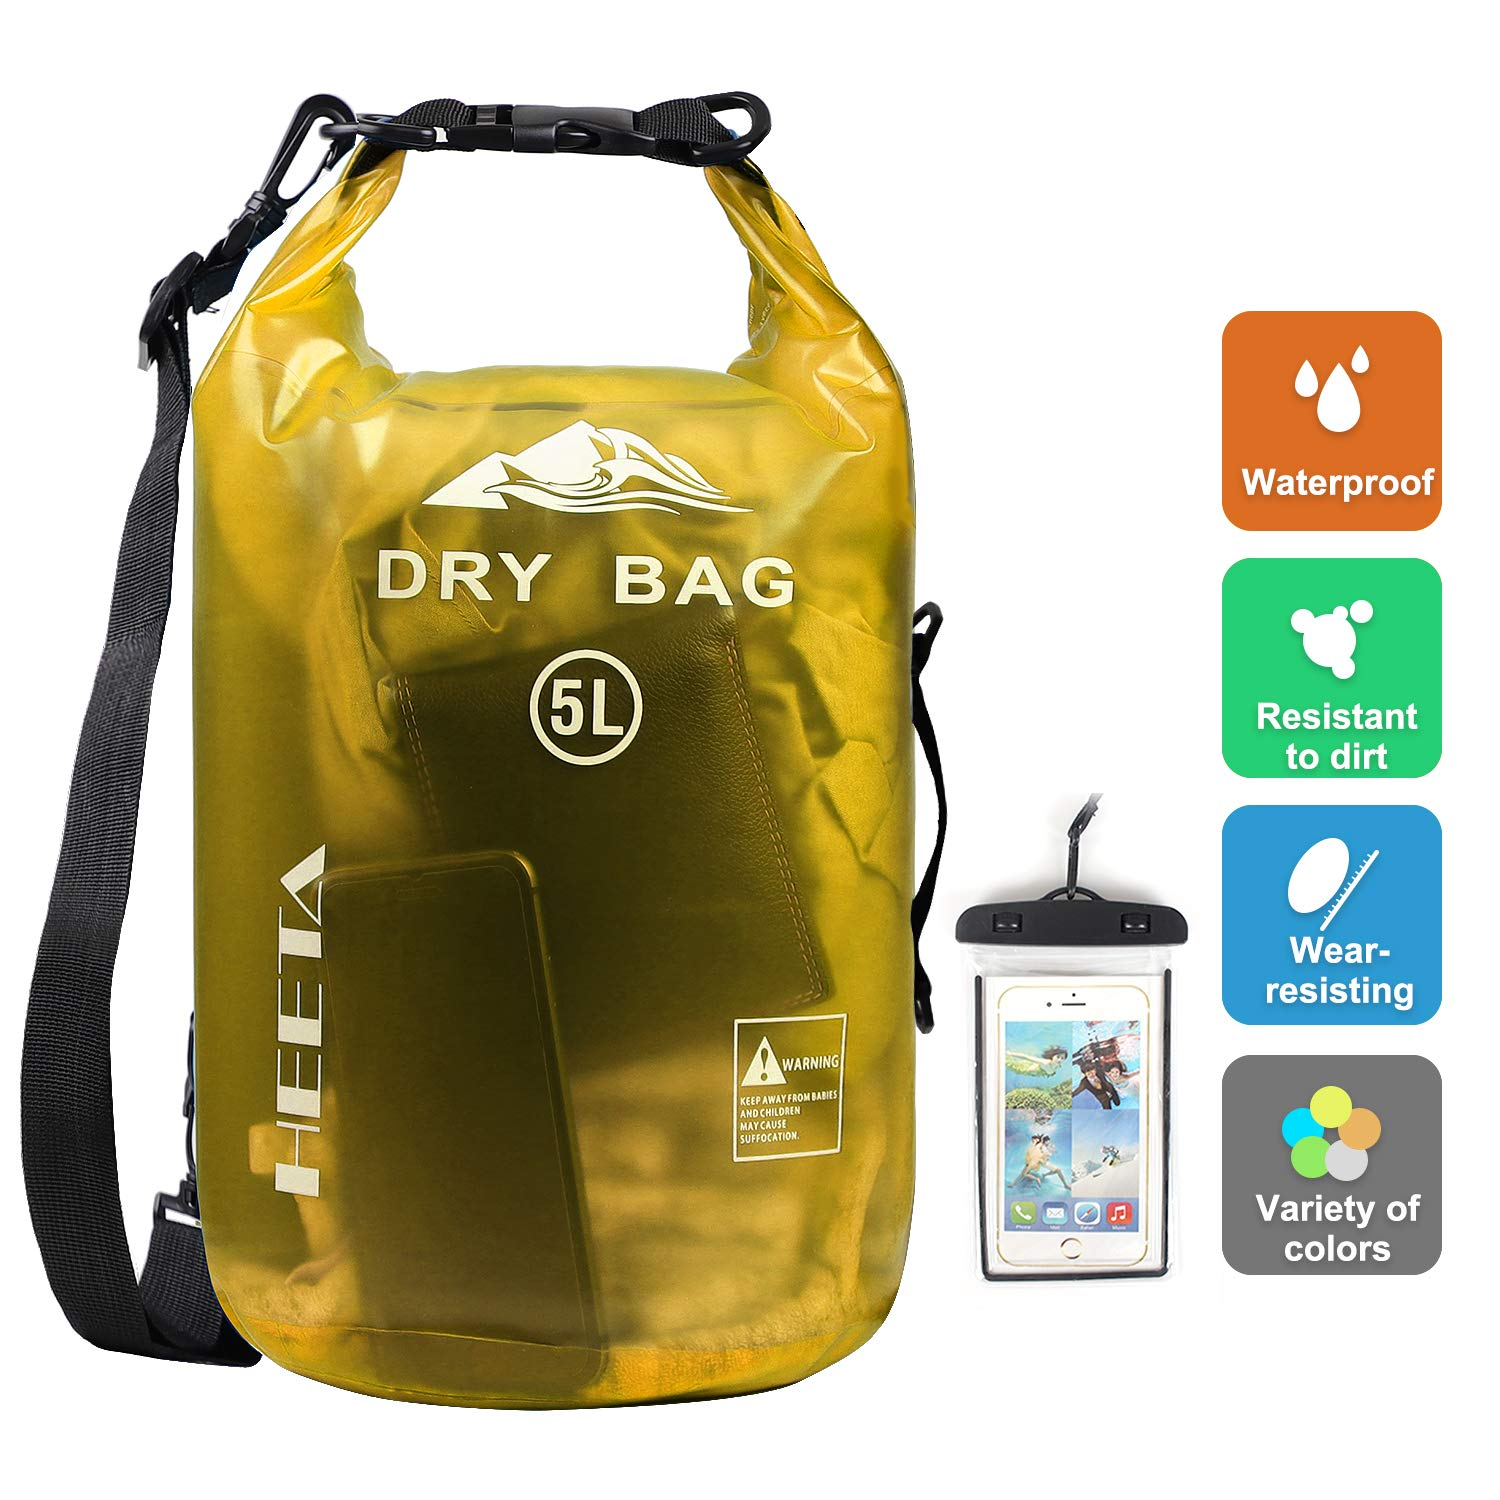 HEETA Waterproof Dry Bag for Women Men, Roll Top Lightweight Dry Storage Bag Backpack with Phone Case for Travel, Swimming, Boating, Kayaking, Camping and Beach, Transparent Yellow 5L by HEETA